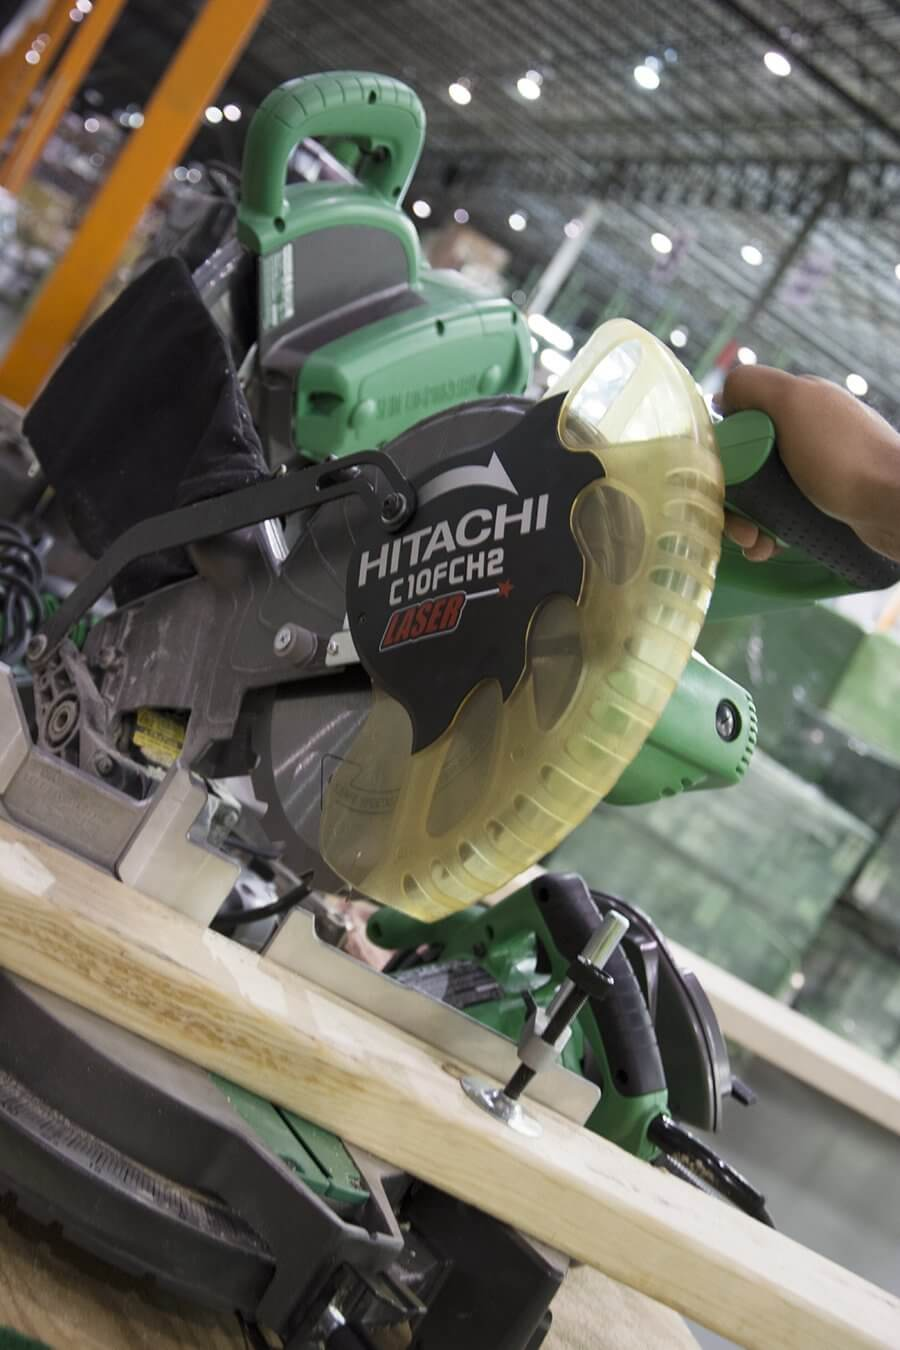 hitachi-c10fch2-miter-saw-07